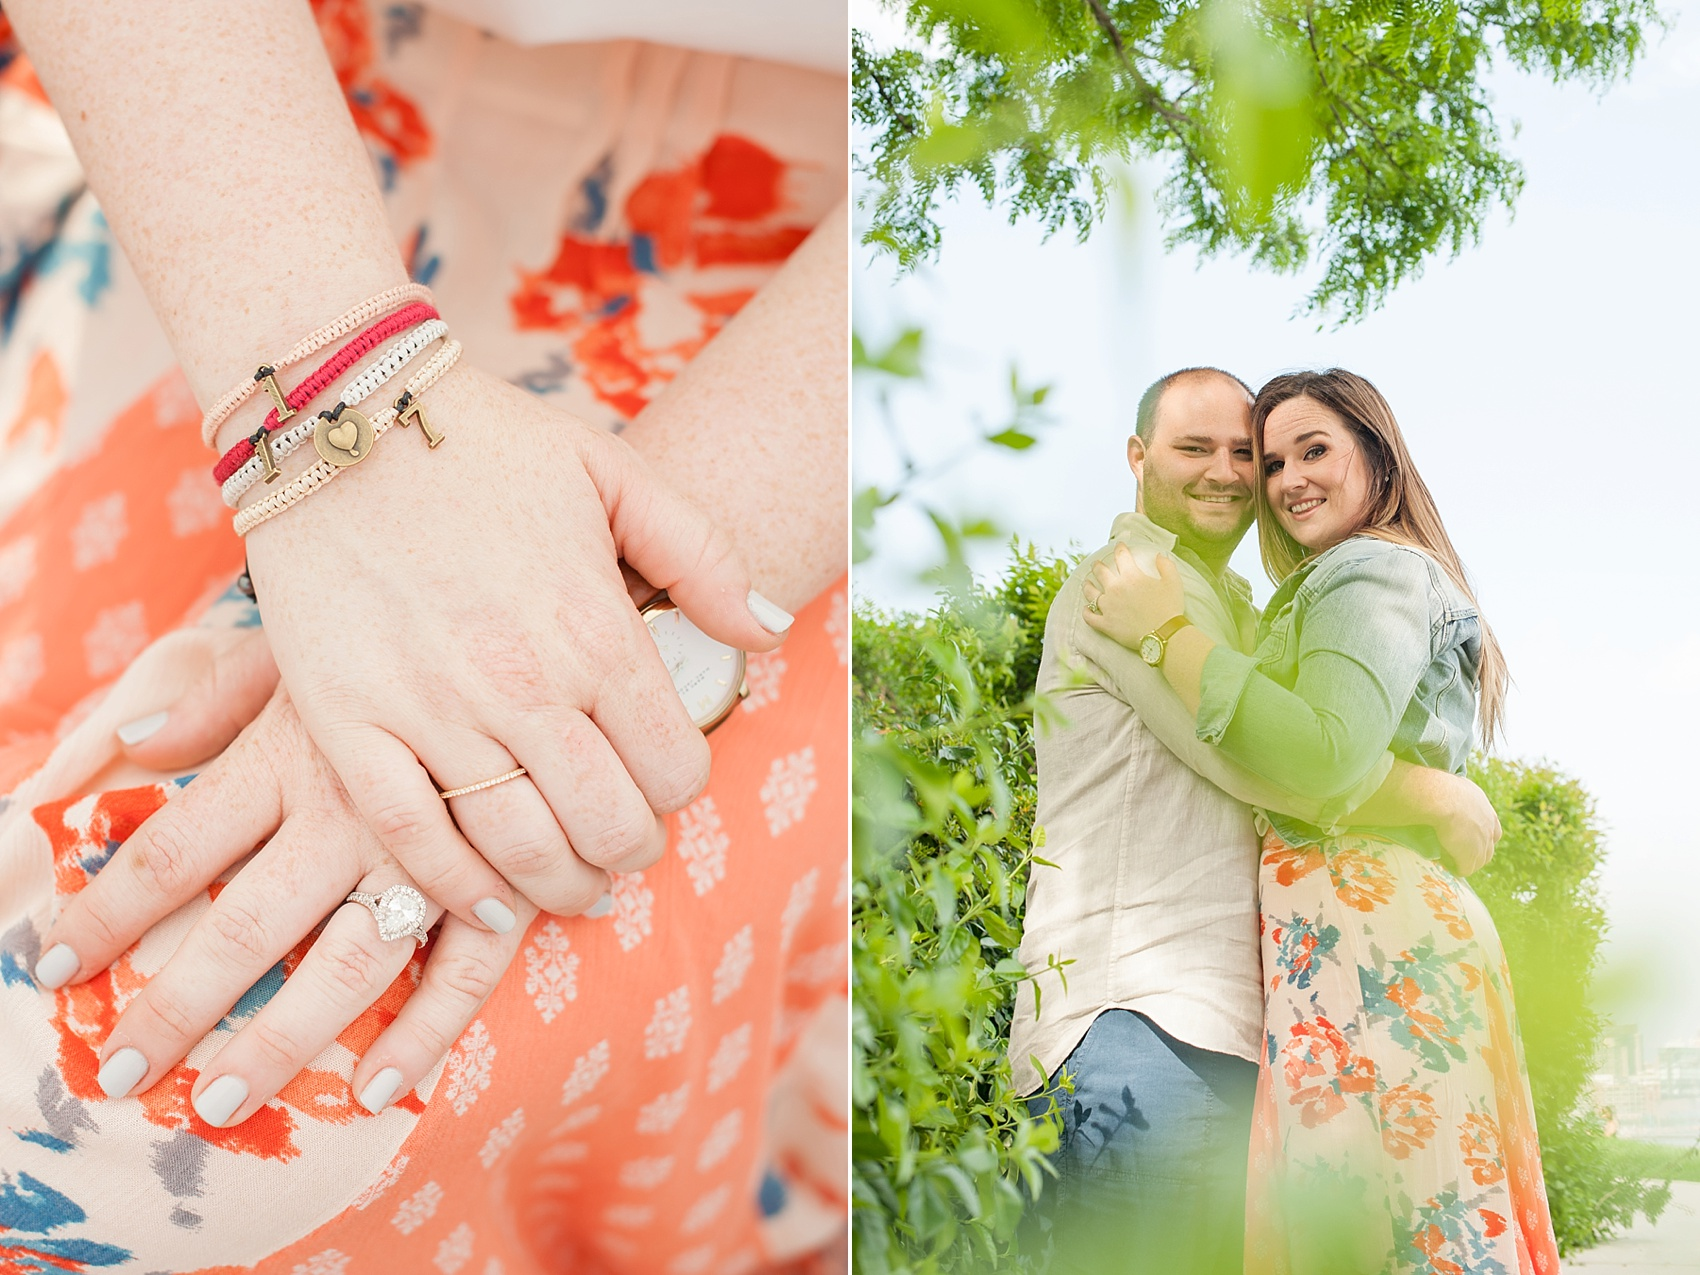 Hoboken engagement photos by Mikkel Paige Photography, NYC and NJ wedding photographer. Custom wedding date bracelets by the bride, available on Etsy shop Grande Strands.